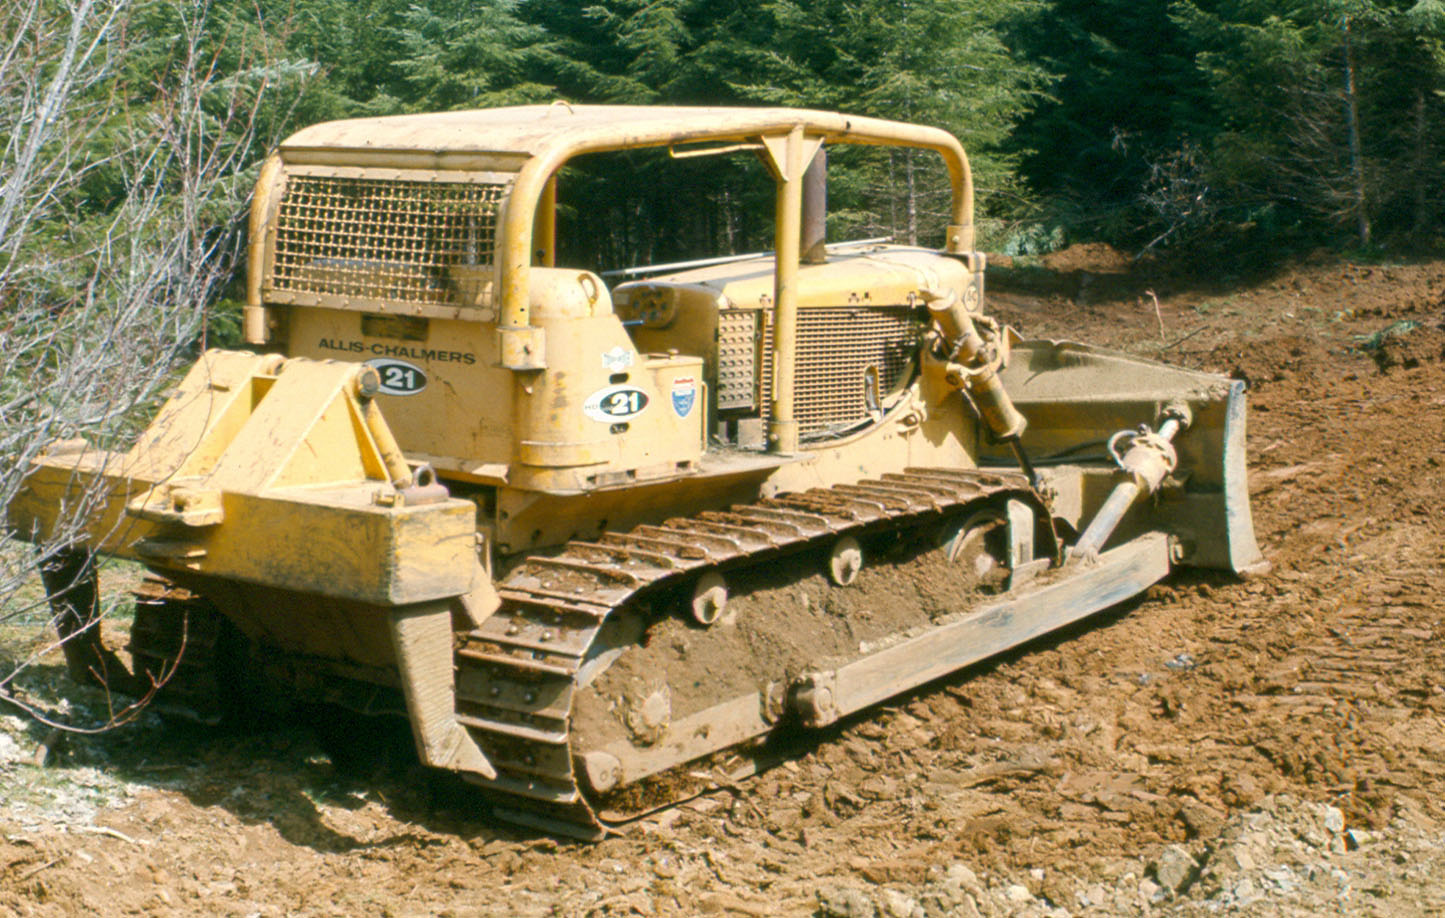 Allis Chalmers Bulldozer Amazing Photo On Openiso Org Collection Of Cars Allis Chalmers Bulldozer Download Wallpapers